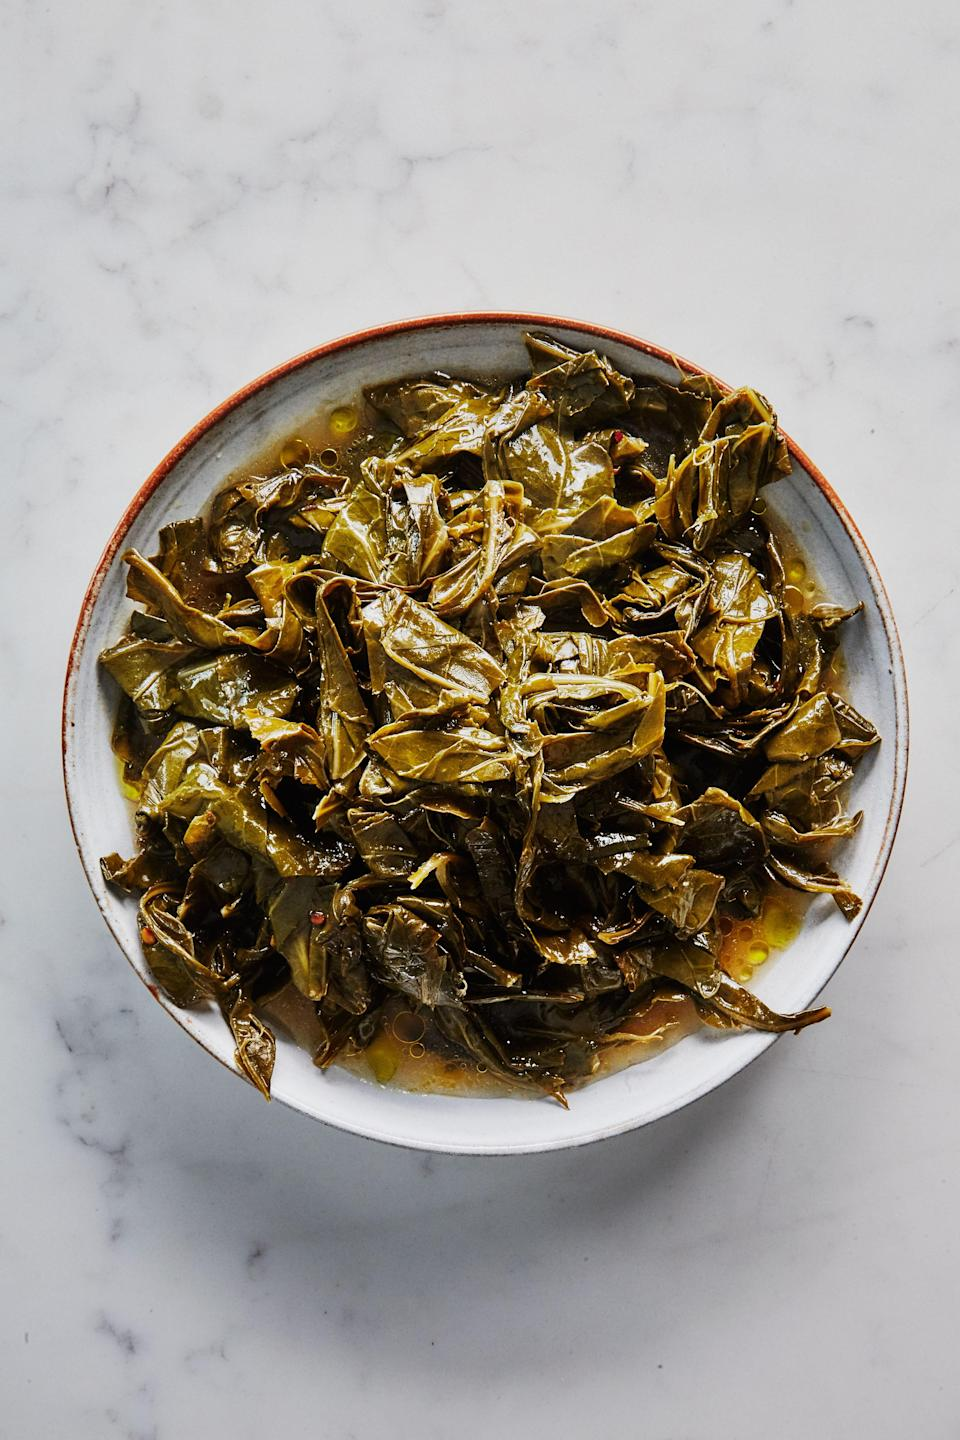 """Truth: Garlic sizzling in olive oil is the greatest smell in the world and the only base needed to transform everything from spaghetti to shrimp to these collards into something that's both simple and spectacular. <a href=""""https://www.bonappetit.com/recipe/slow-cooked-collard-greens-in-olive-oil?mbid=synd_yahoo_rss"""" rel=""""nofollow noopener"""" target=""""_blank"""" data-ylk=""""slk:See recipe."""" class=""""link rapid-noclick-resp"""">See recipe.</a>"""